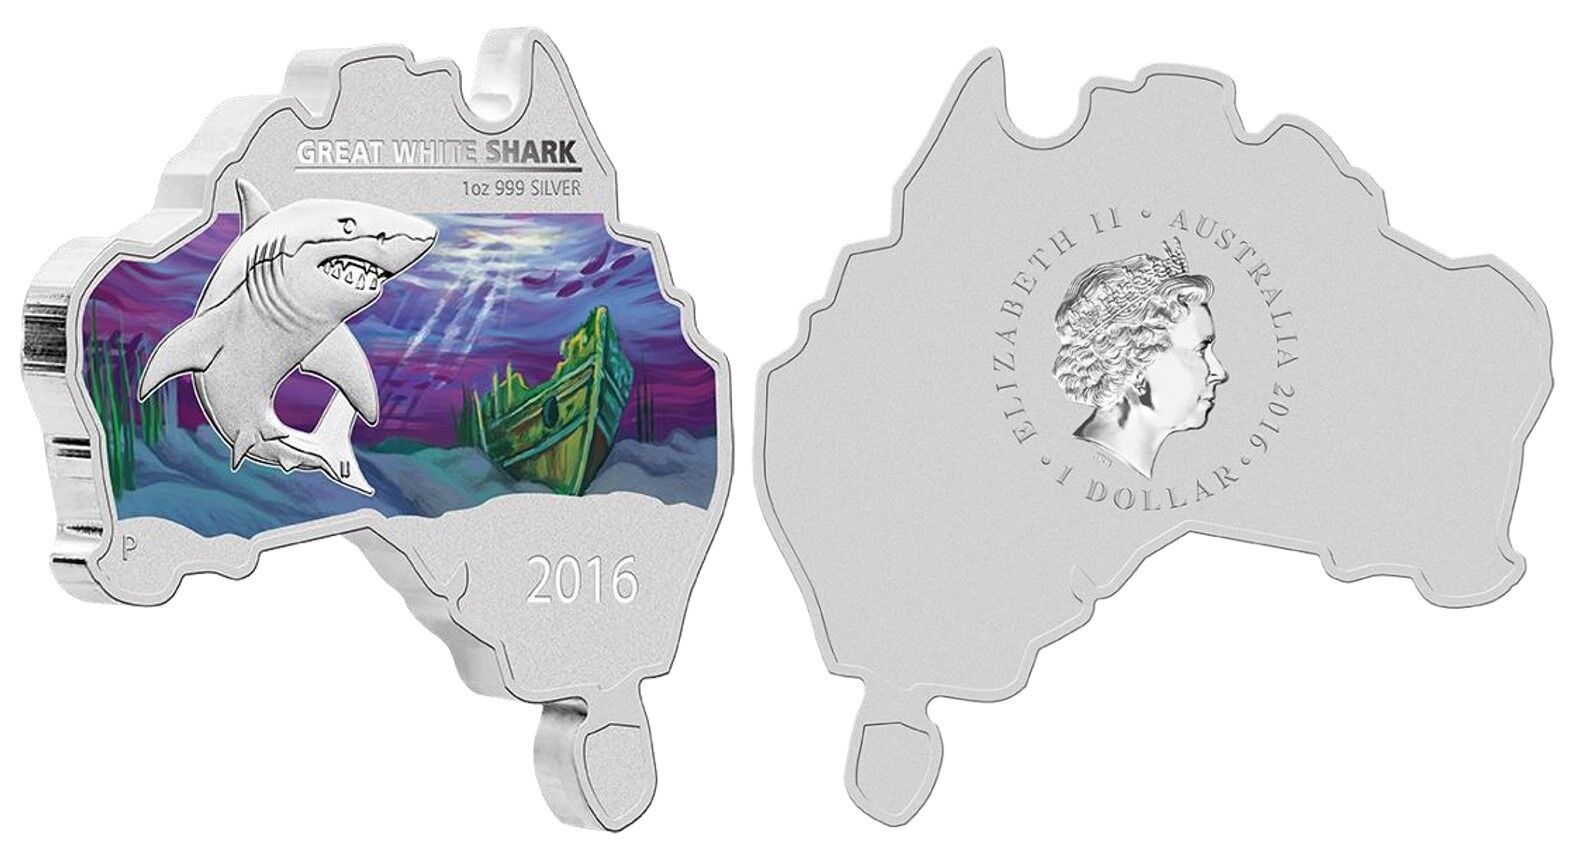 2016 Map Shaped Coin Series GREAT WHITE SHARK 1oz Silver Coin Australia